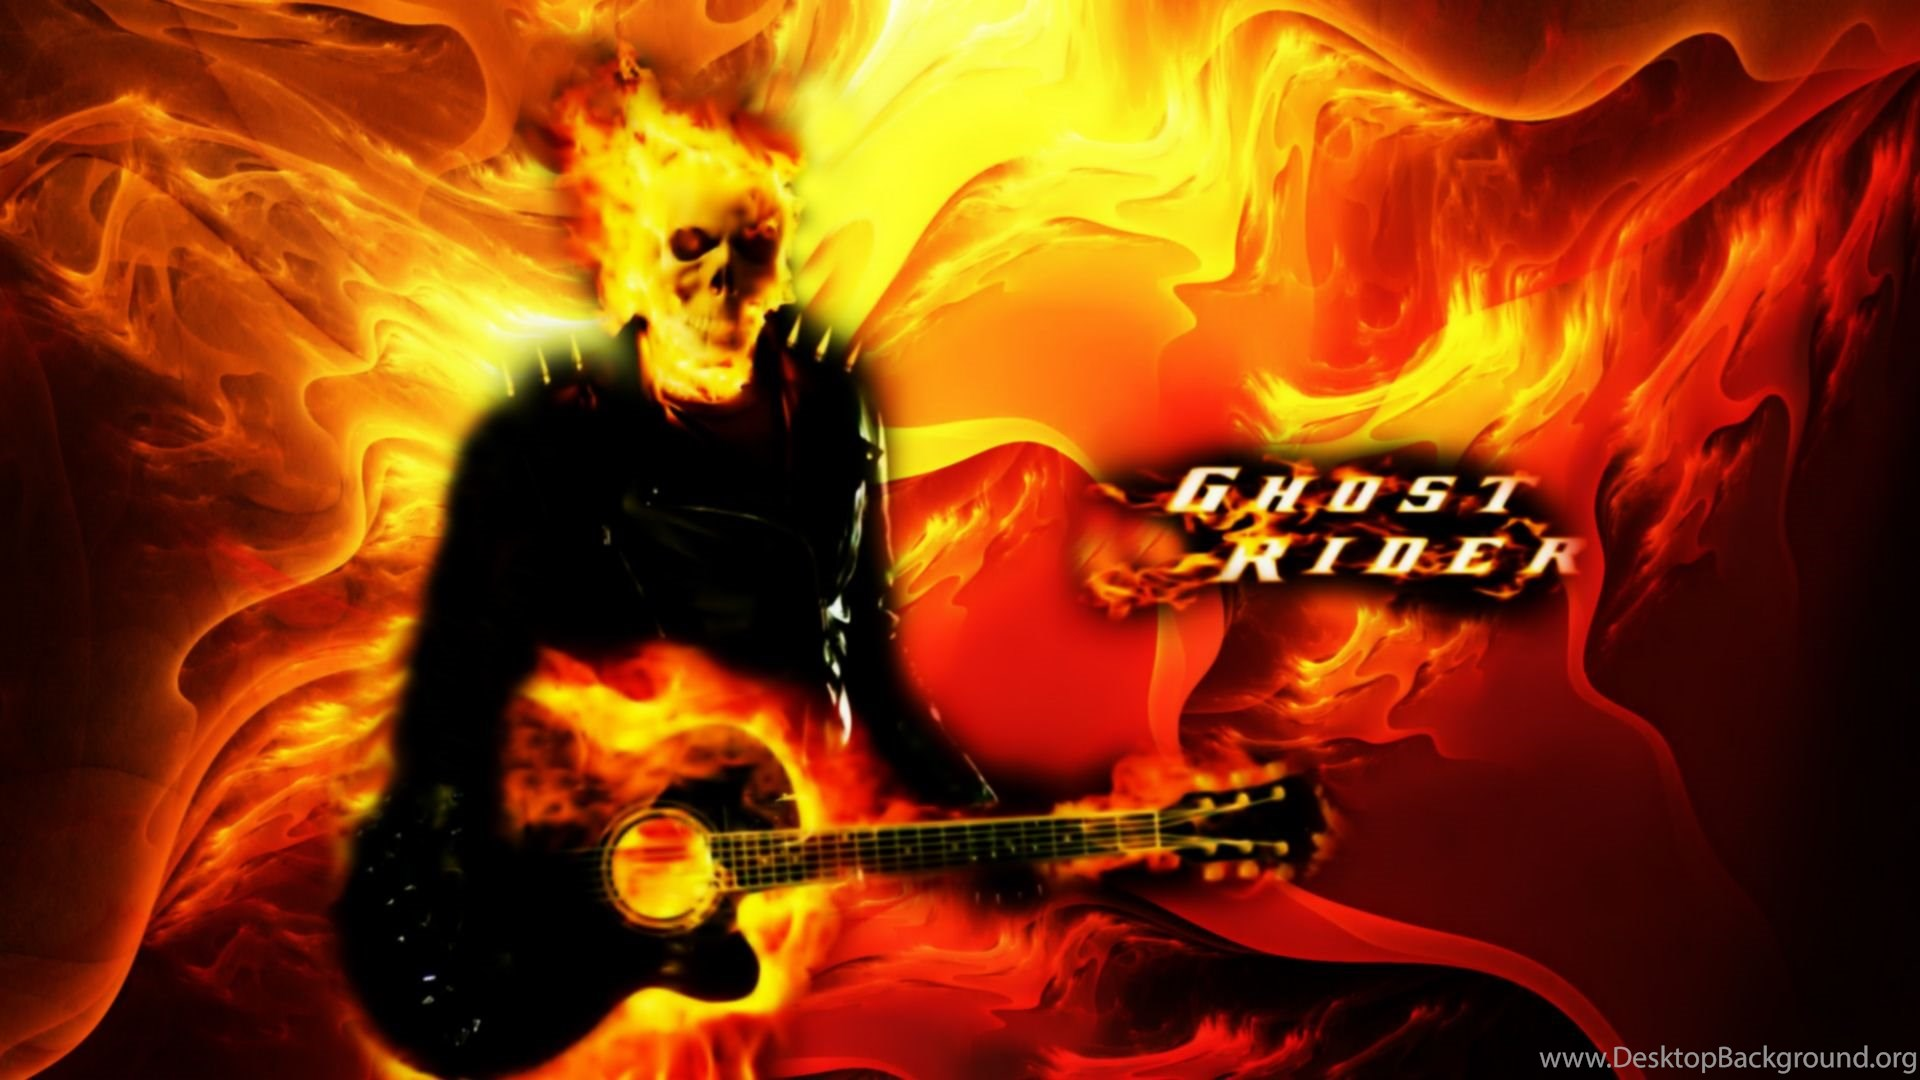 ghost rider hd magnificent wallpapers free hd wallpapers download